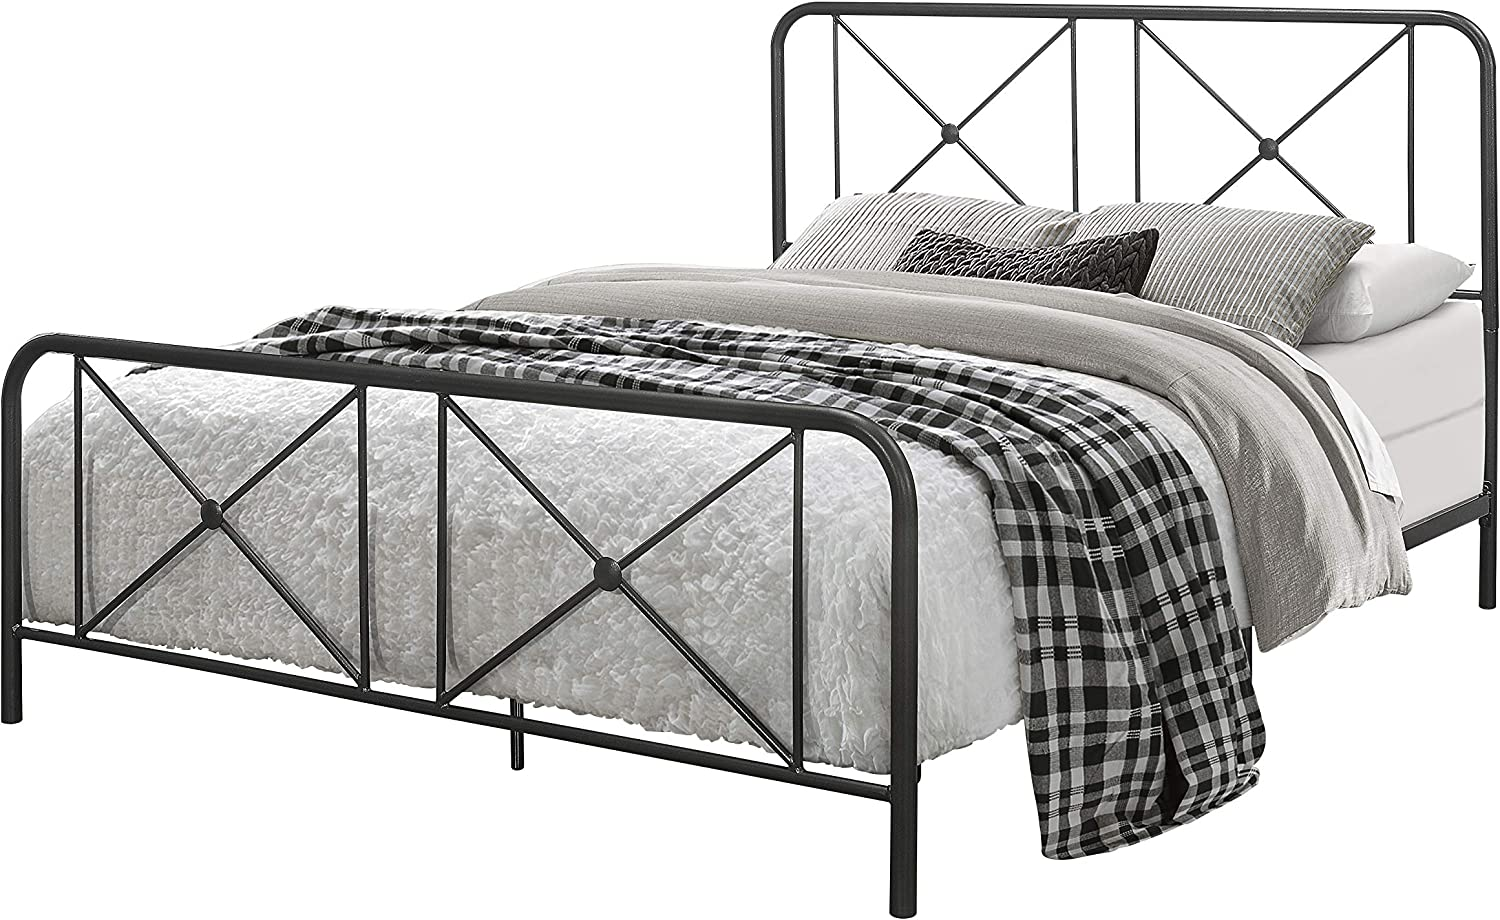 Hillsdale Furniture Queen Metal Bed with Double X Design Platform, Black